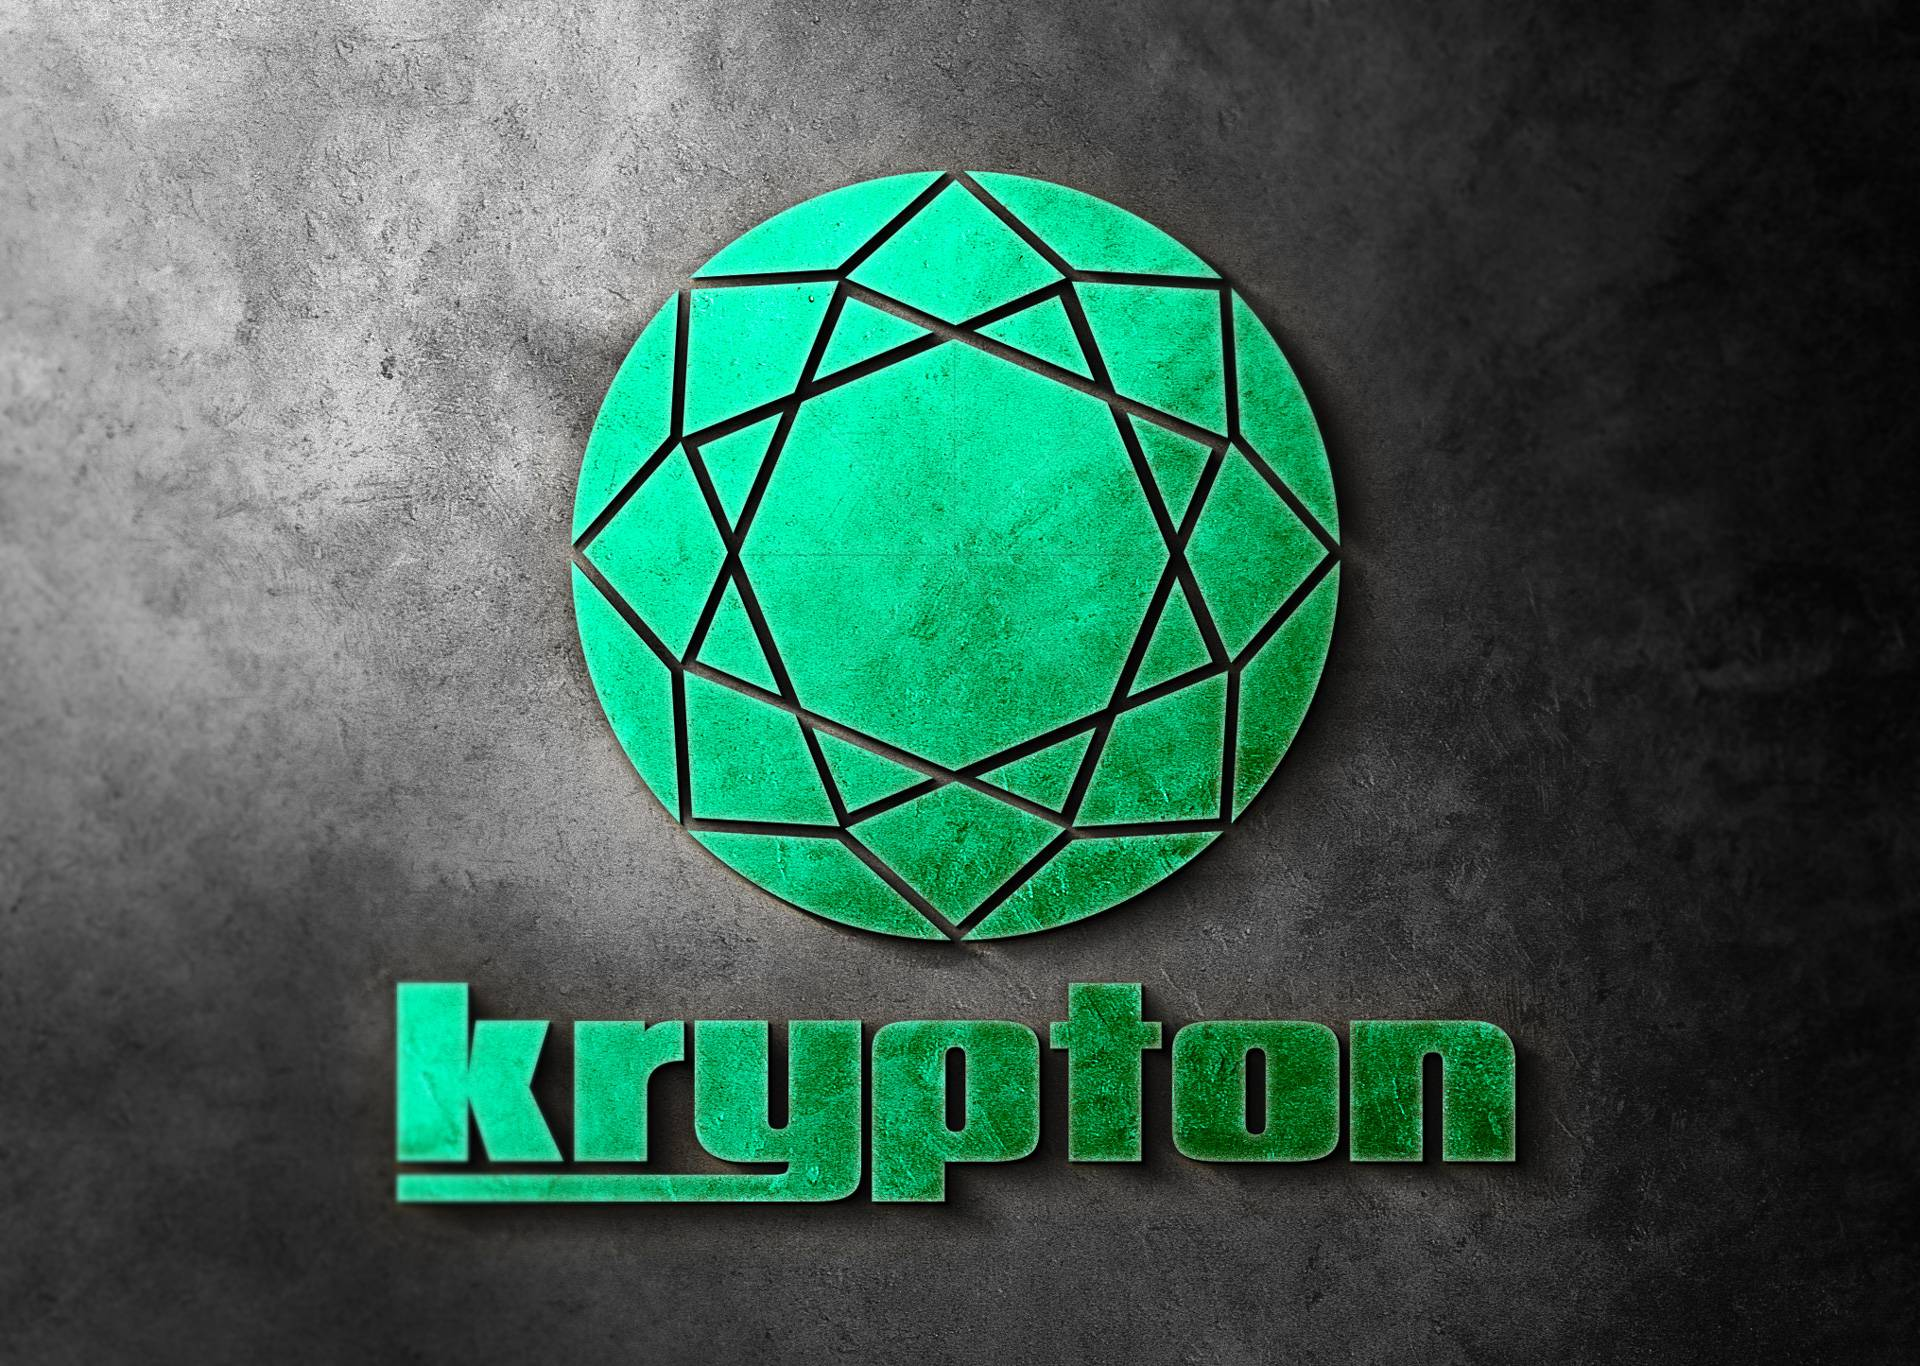 Krypton Aims At More Secure Smart Contracts After Ethereum Fork